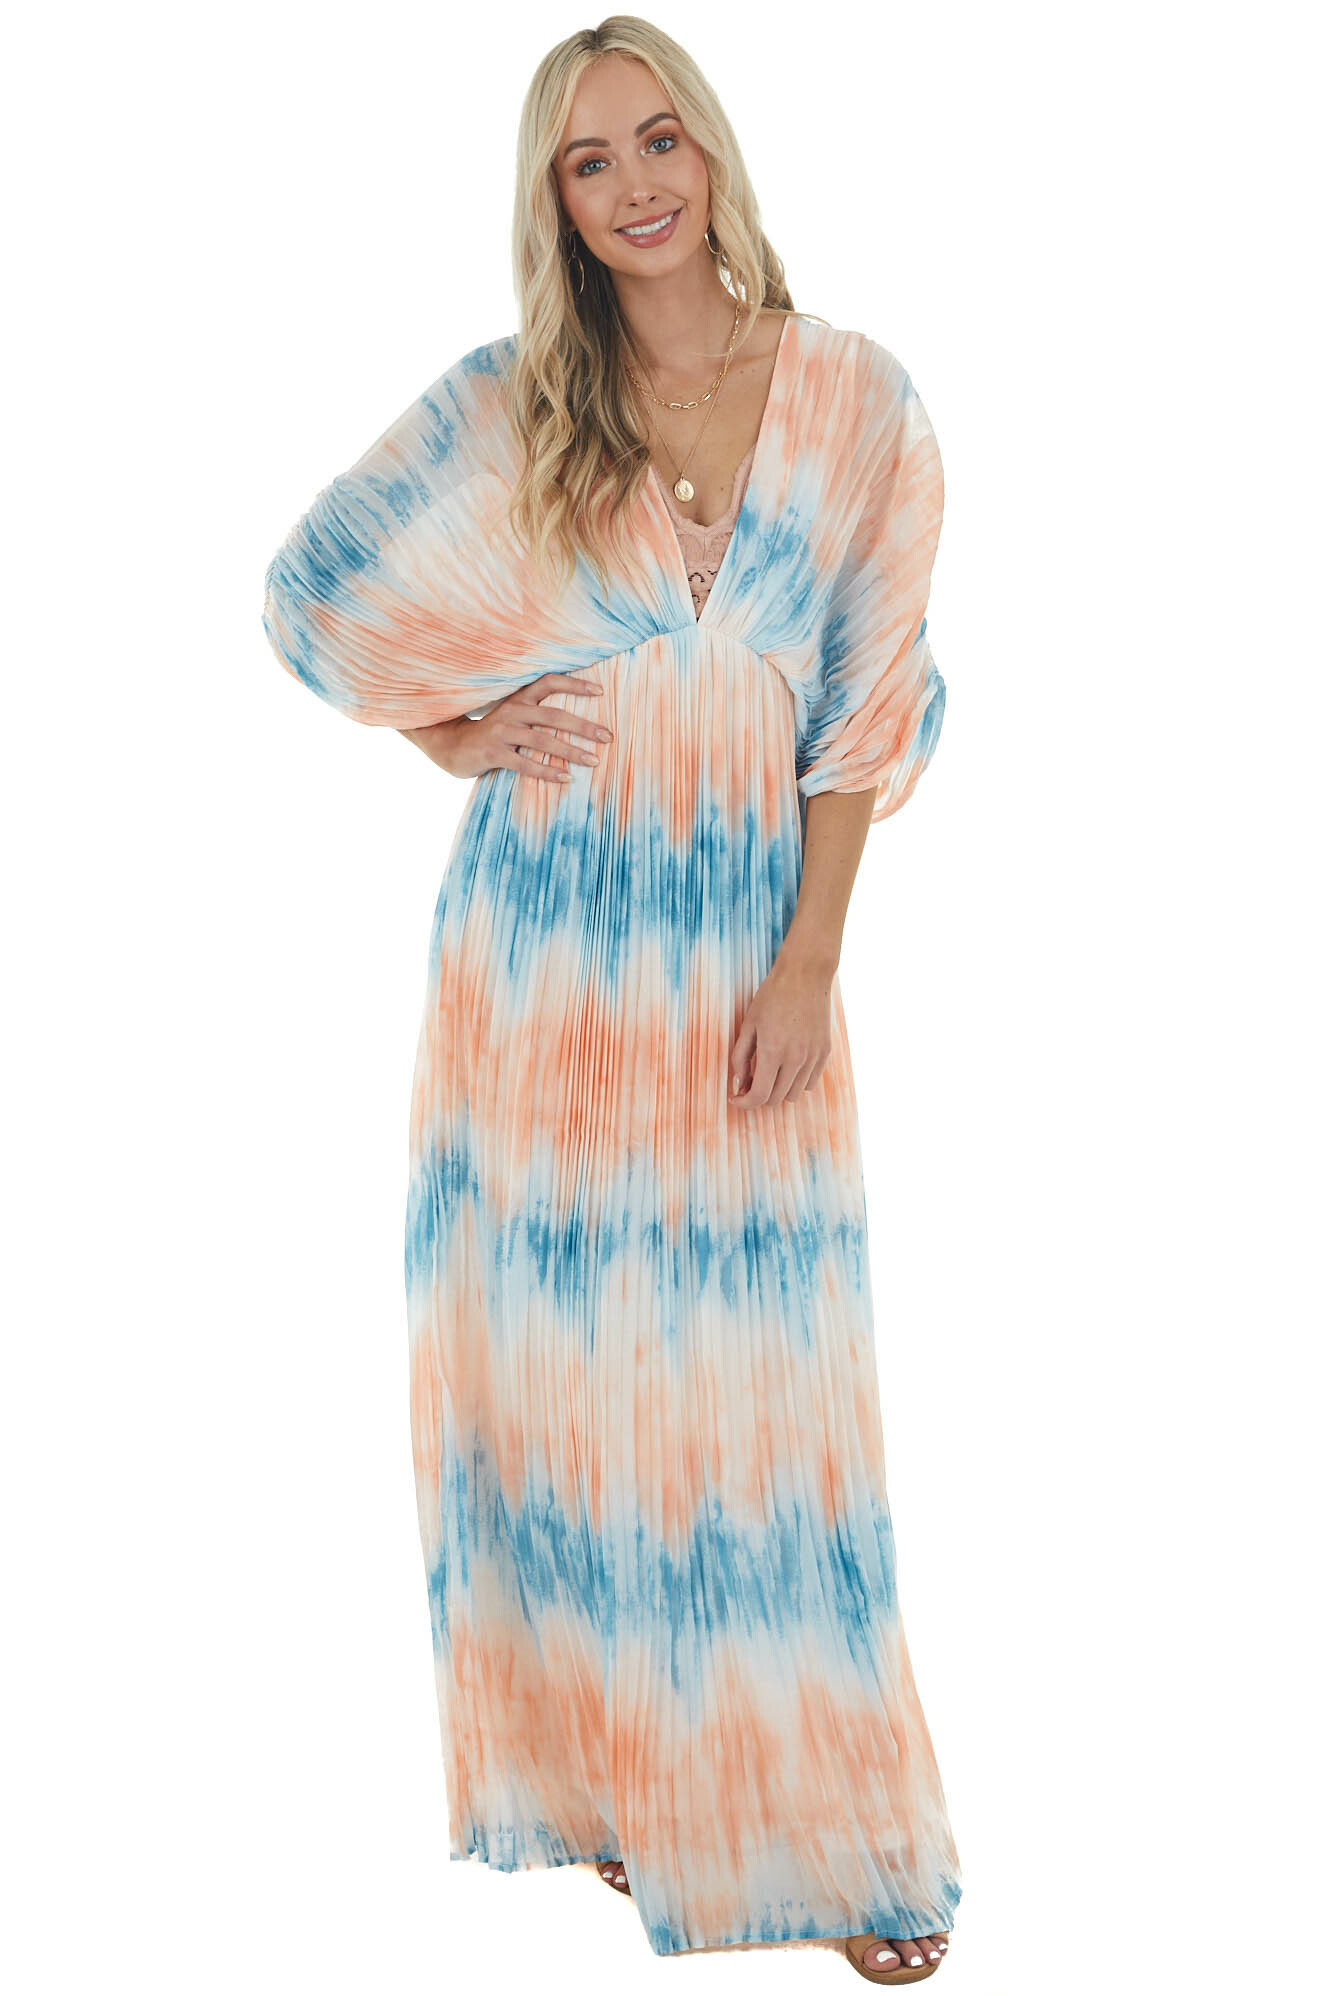 Cobalt and Salmon Tie Dye Pleated Woven Maxi Dress